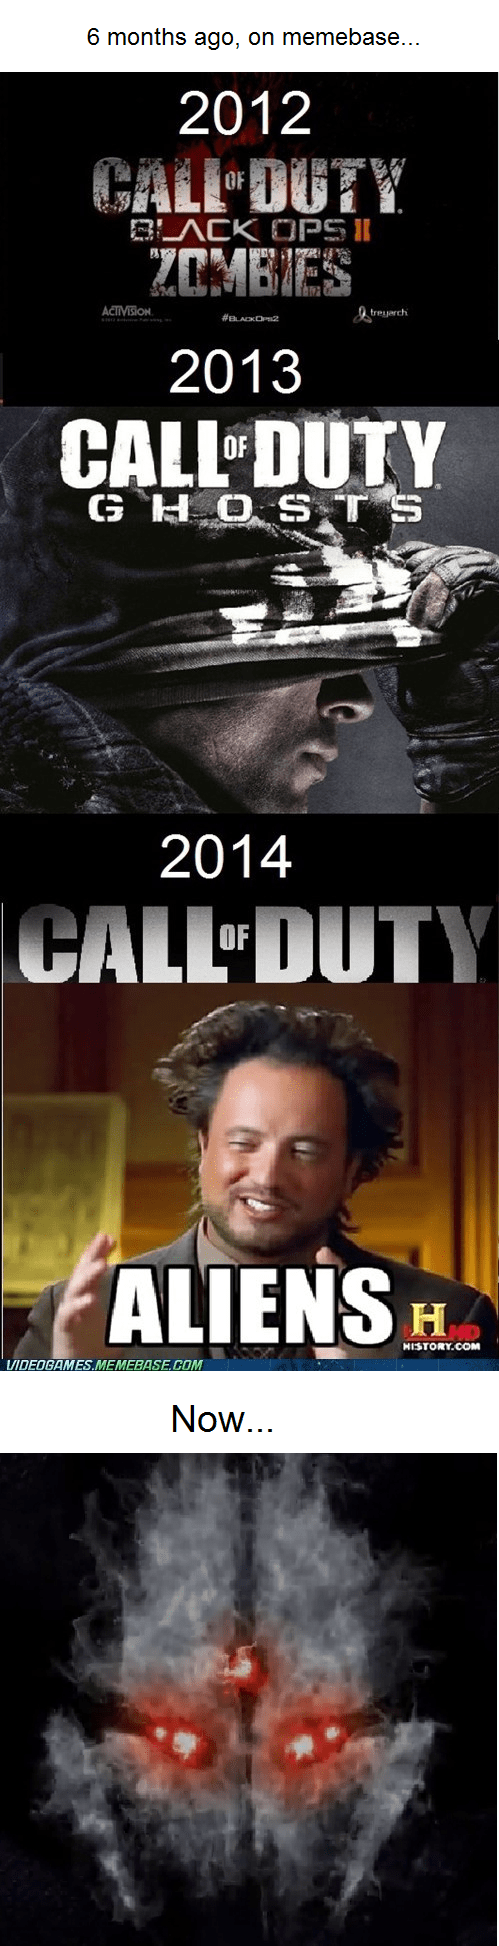 call of duty,Aliens,re-frames